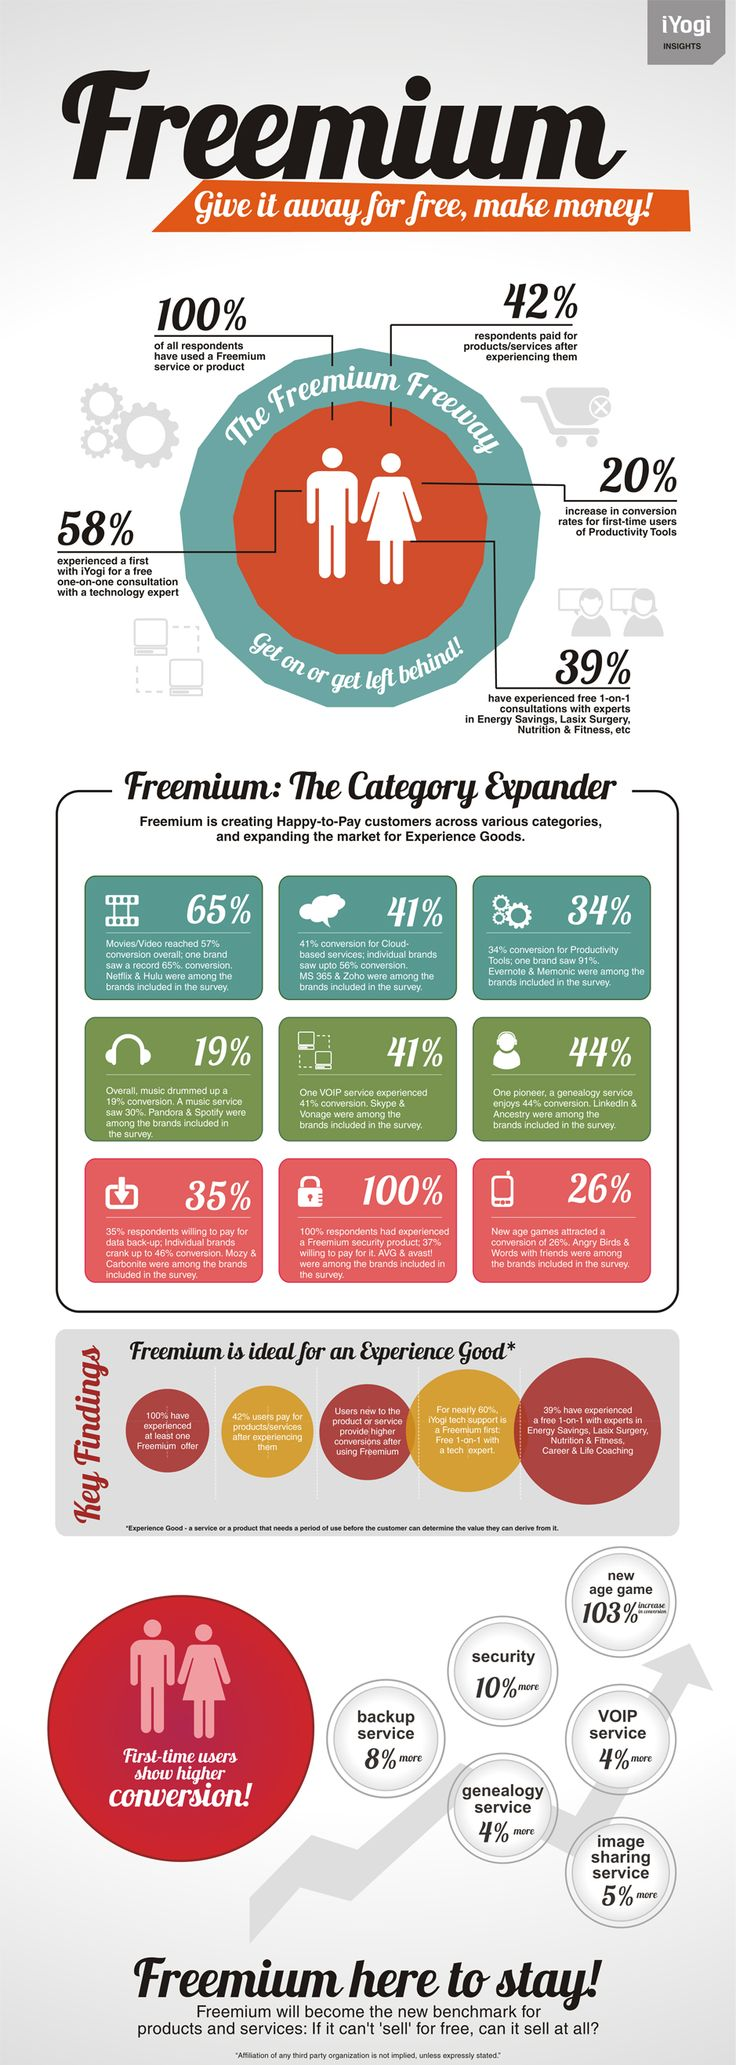 """A lot of great infographics are produced these days to communicate ideas. We like this one to explain the Freemium model. For those interested in this topic Chris Anderson's book """"Free"""" is a great read. The unabridged audio edition is available online for free. (Very clever)"""